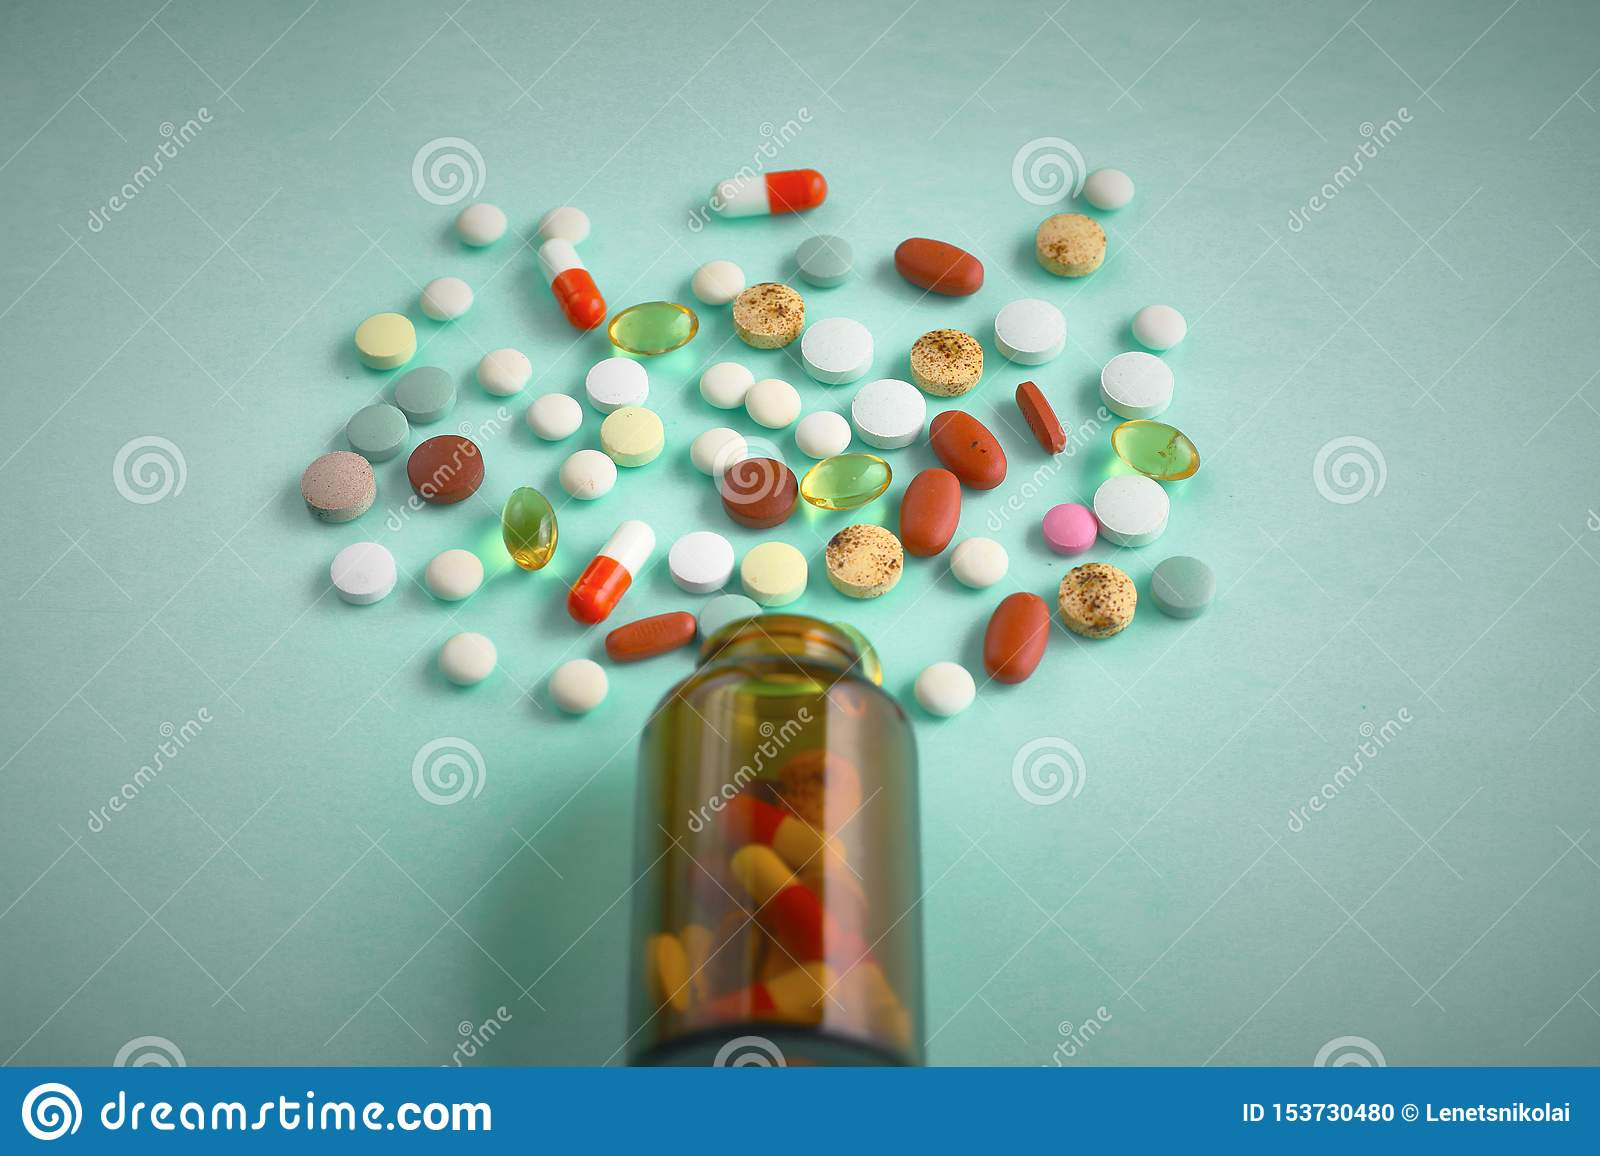 Little glass bottle with pills spilled over a table